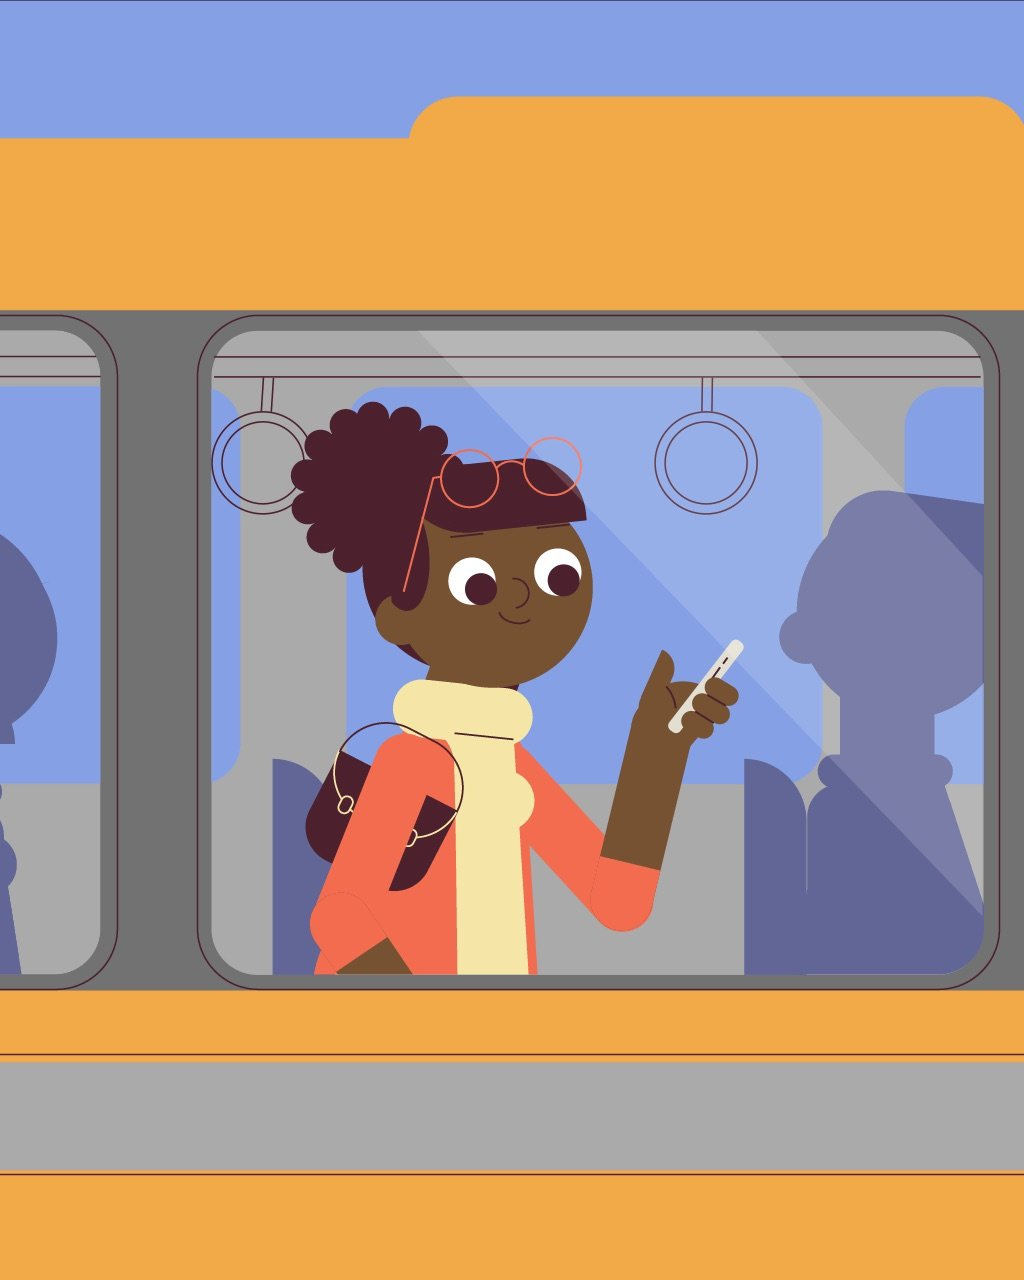 illustration for an explainer video animation made for Wag, a dog walking service. It shows a woman in the bus looking at her phone